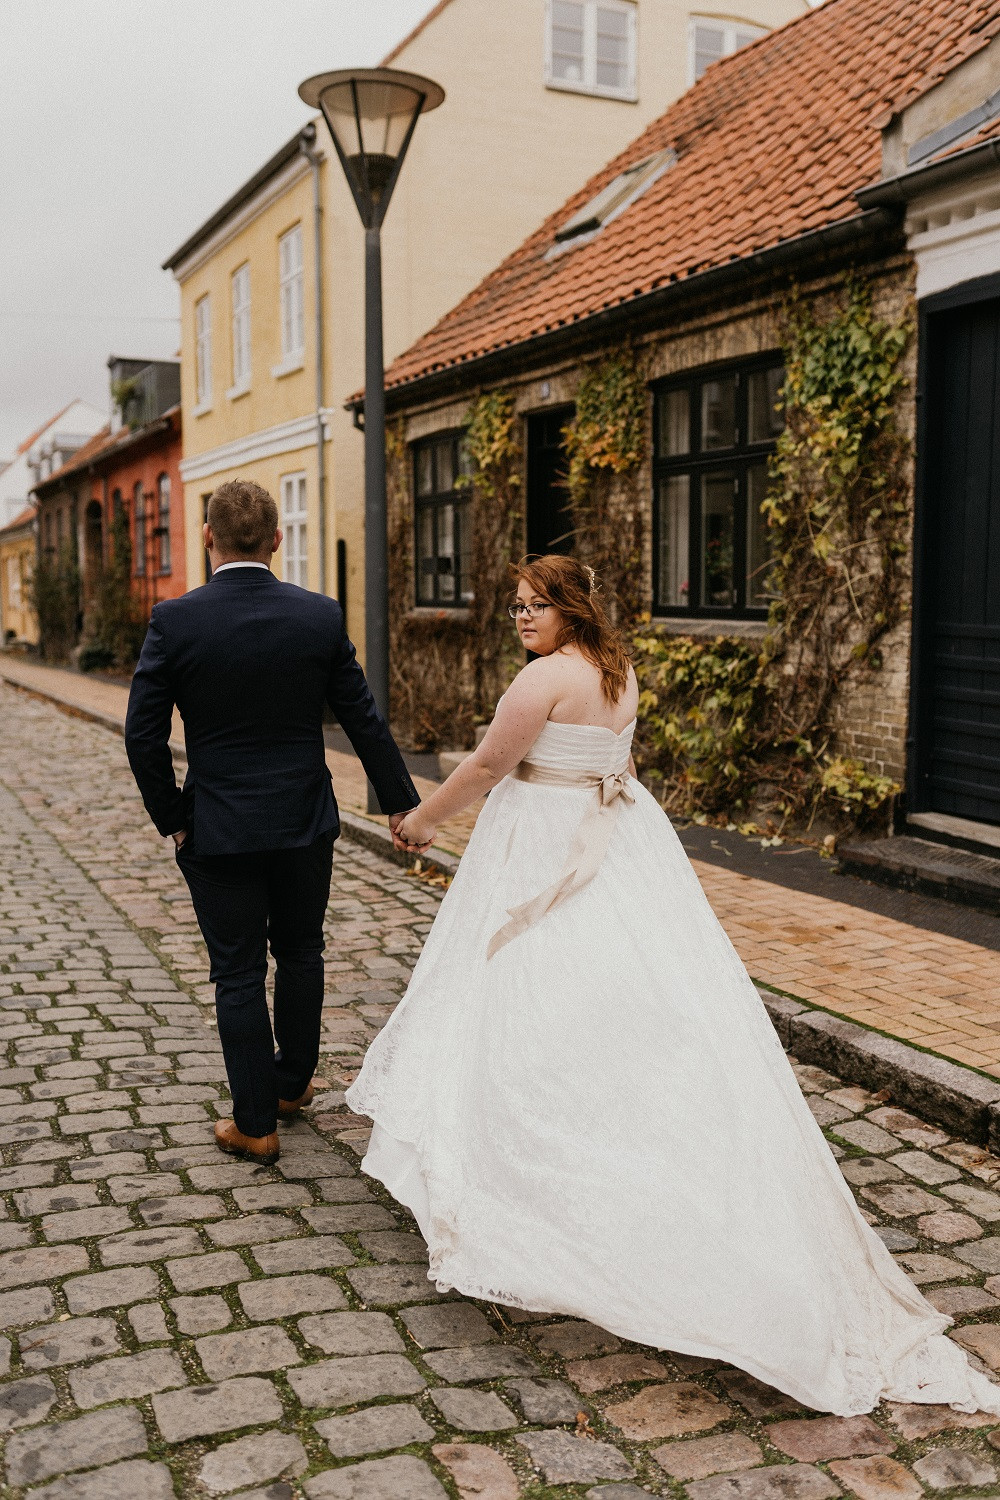 A bride and groom walking on the Maribo street after they get married in Denmark